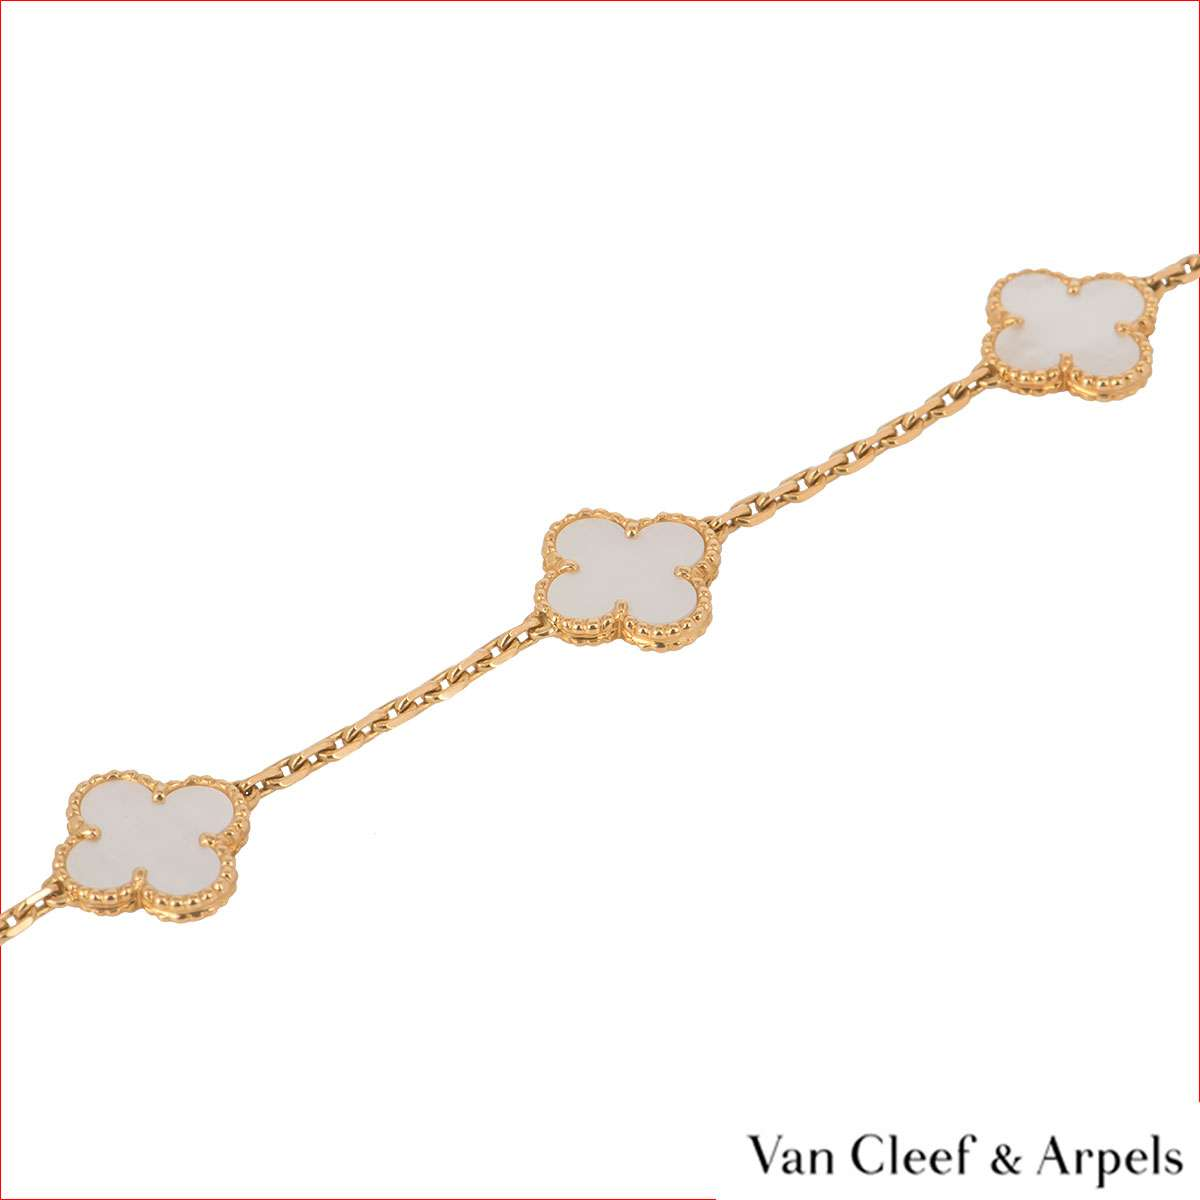 Van Cleef & Arpels Yellow Gold Vintage Alhambra Long Necklace VCARA42100